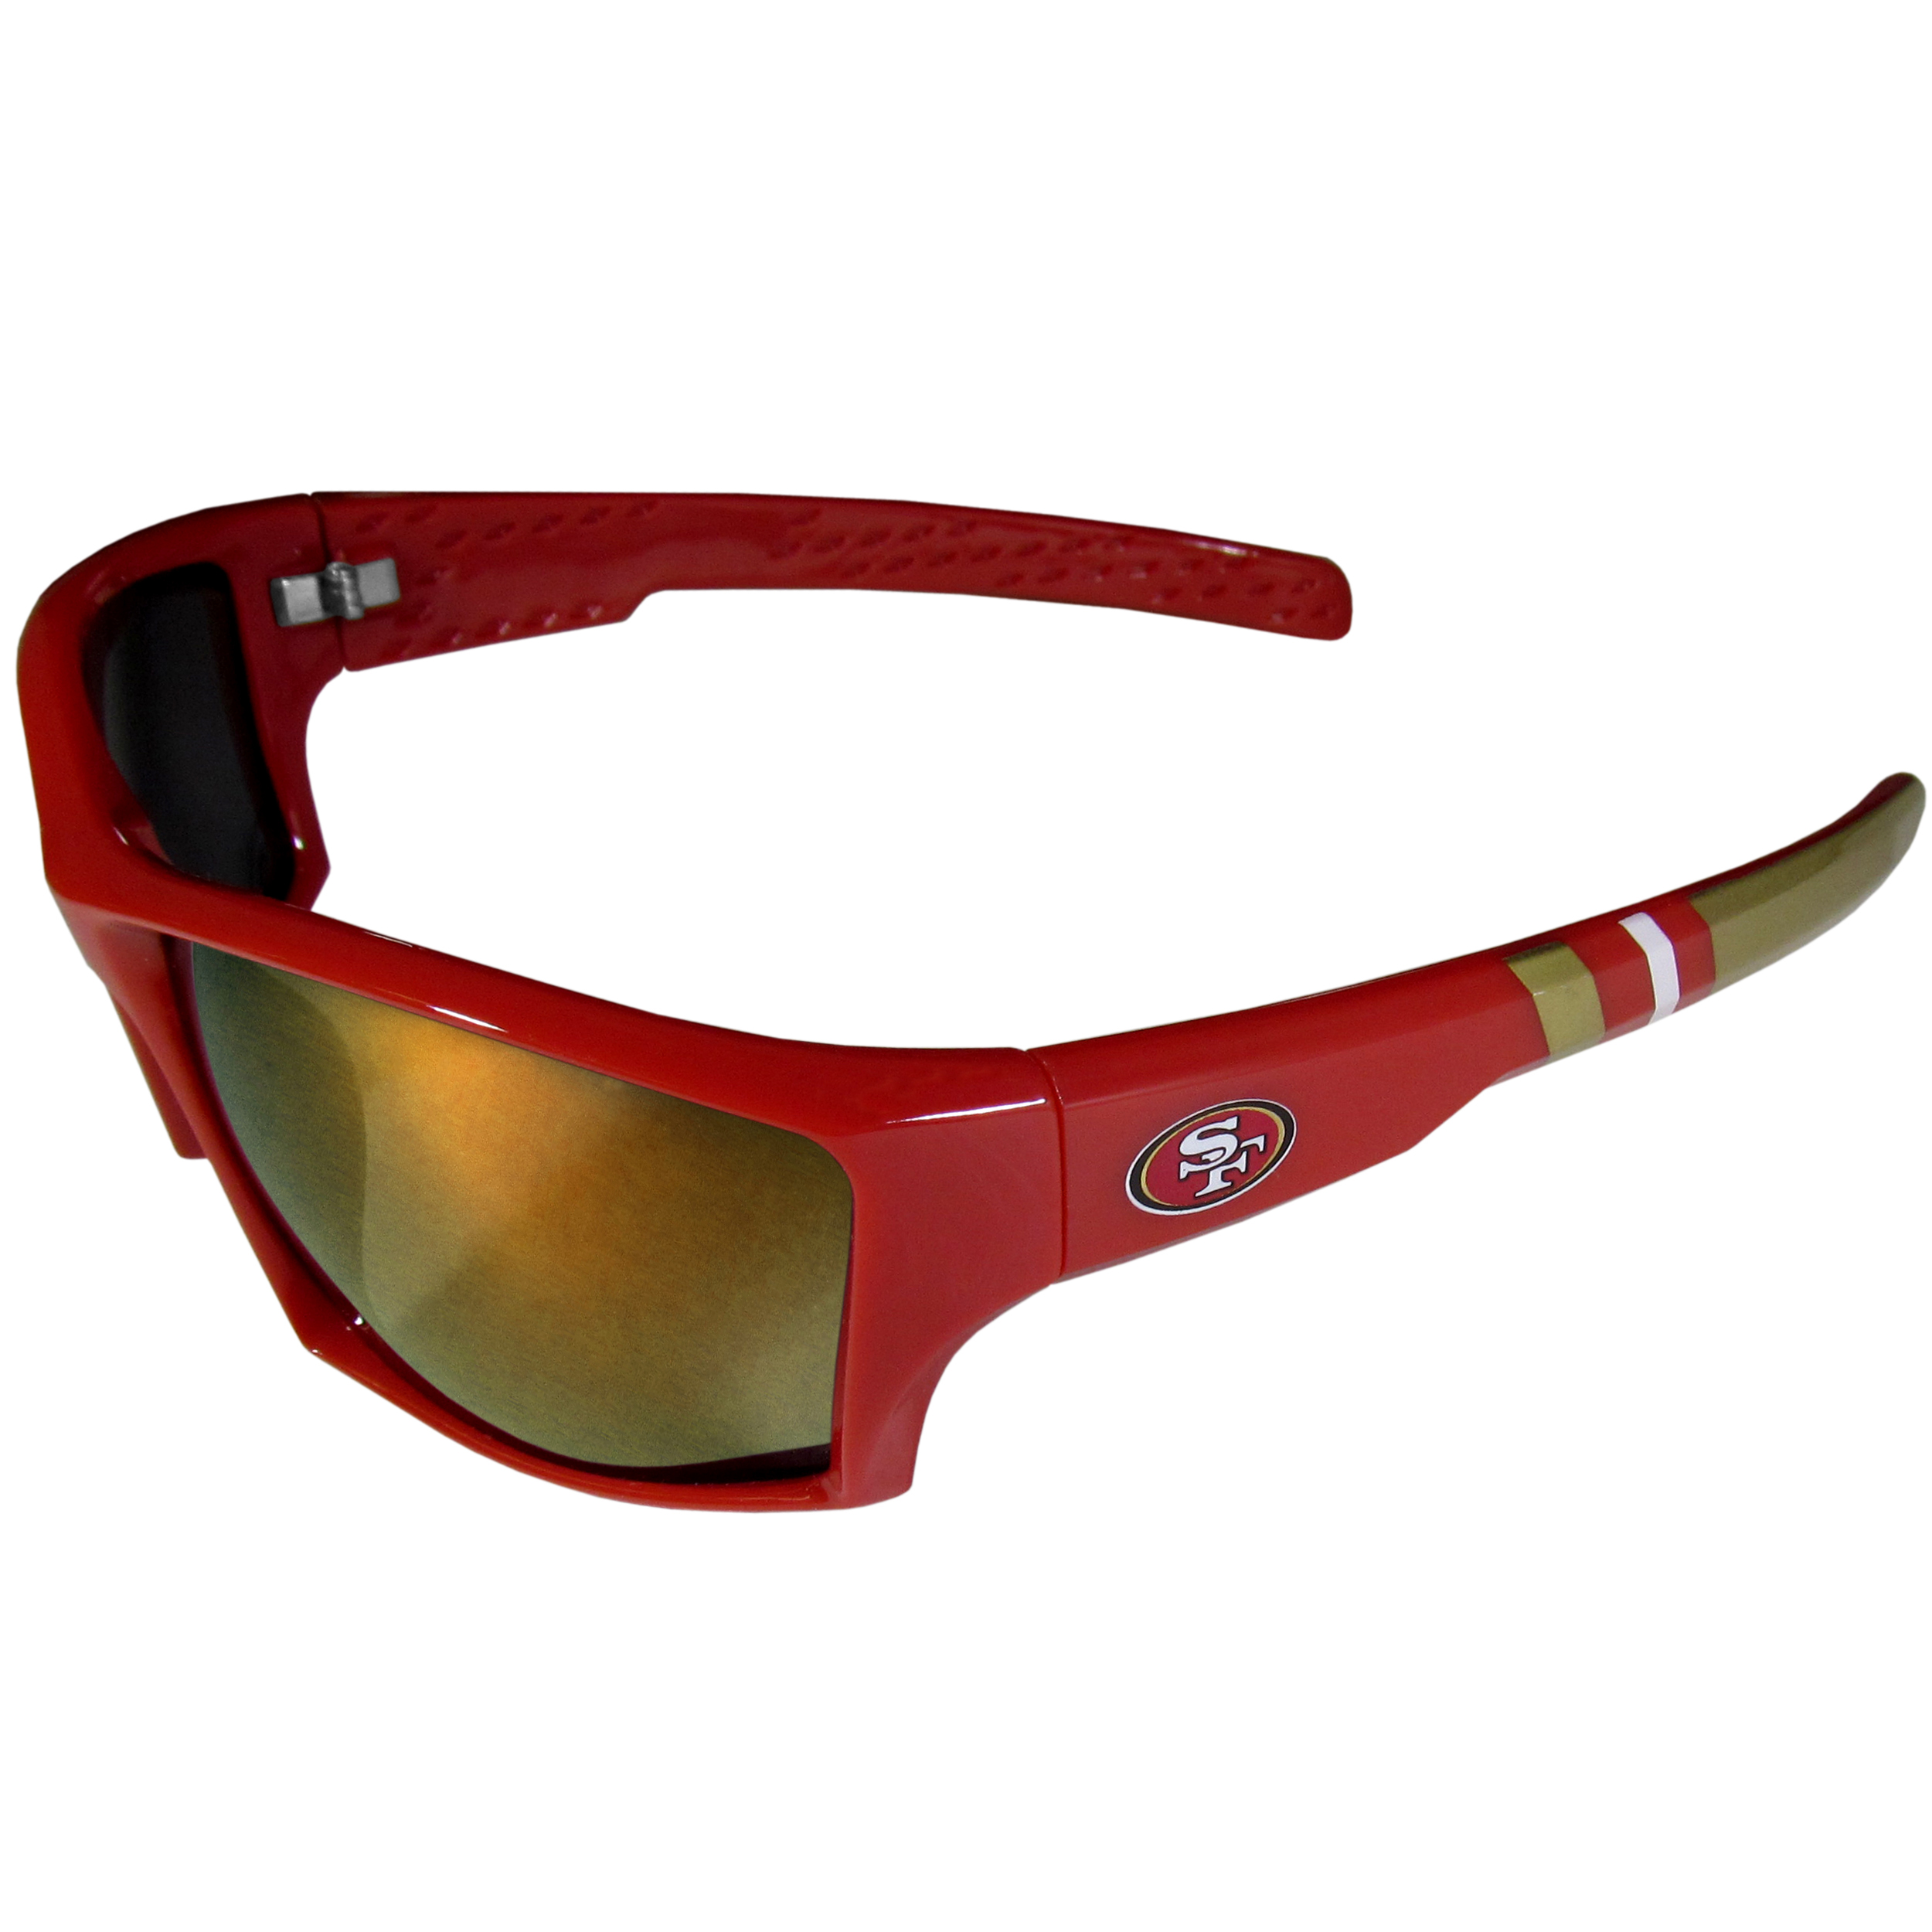 San Francisco 49ers Edge Wrap Sunglasses - Be an icon of edgy style while you're in the stadium cheering your San Francisco 49ers to victory with our polarized wrap sunglasses that feature 100% UVA/UVB rating for maximum UV protection. The light-weight frames are built to last with flex hinges for comfort and durability which make them perfect for driving or just lounging by the pool. The colorful rubber grips on the arms of these fashionable sunglasses make them perfect for someone with an active lifestyle. Whether you are hiking, fishing, boating, running on the beach, golfing or playing your favorite sport these designer frames will set you apart. Our edge wrap sunglasses are true quality eyewear at an affordable price. The wrap style frames come with team colored stripes and team logos so you can show off your die-hard team pride while protecting your eyes from those bright sun rays.